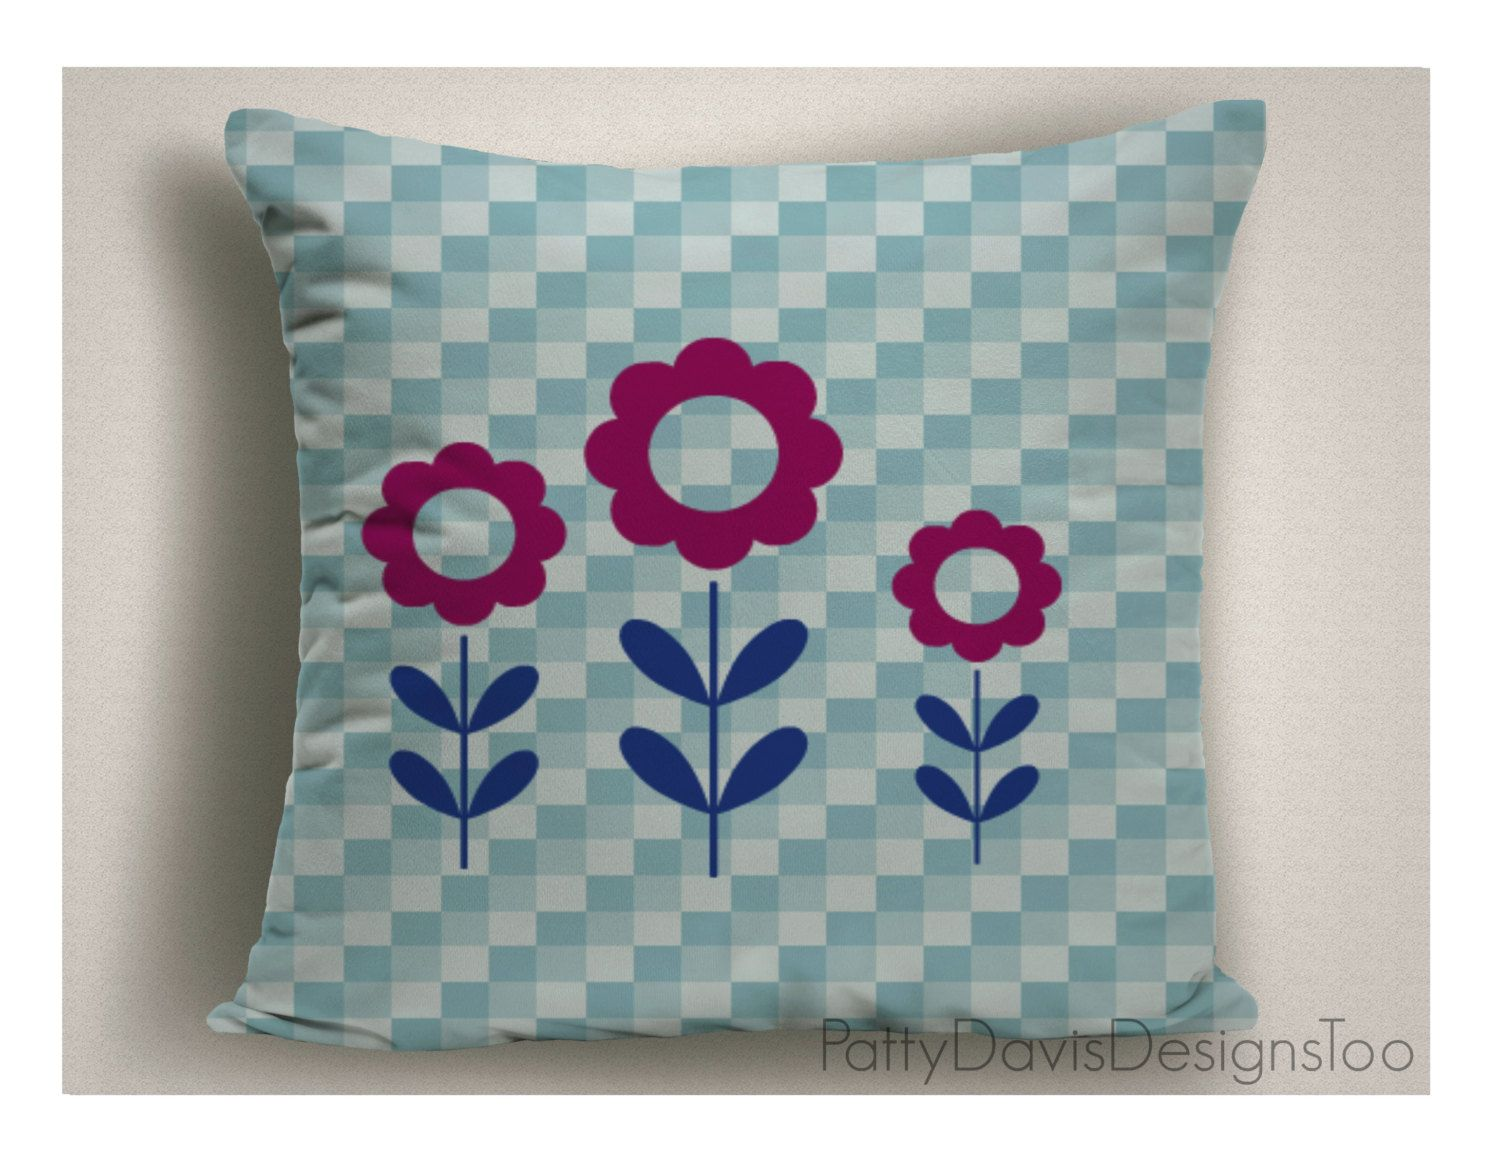 Decorative Throw Pillow With Original Design Blue And White Flower Pillows